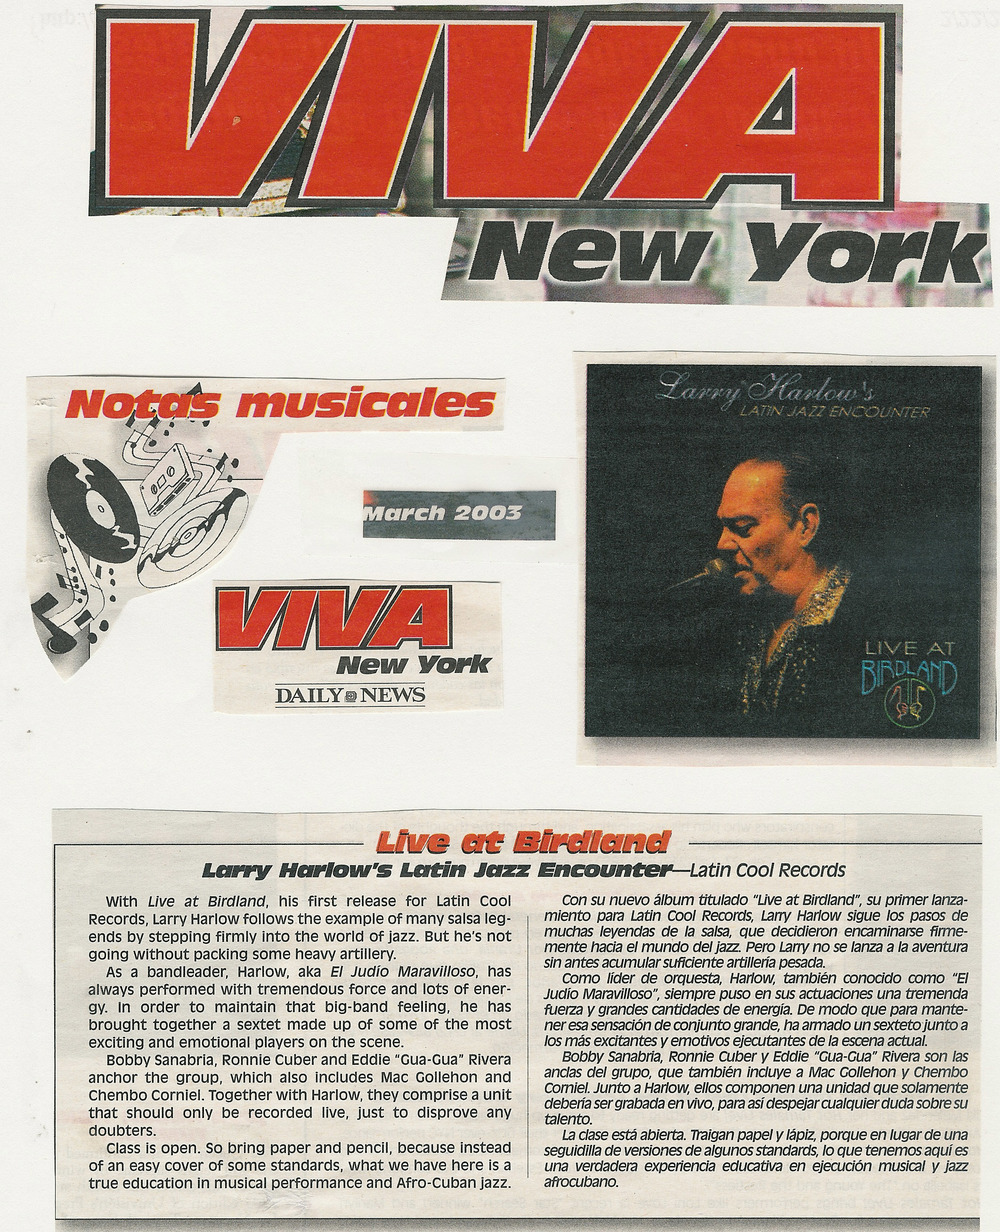 Viva review LJE DAily NEWS.jpg